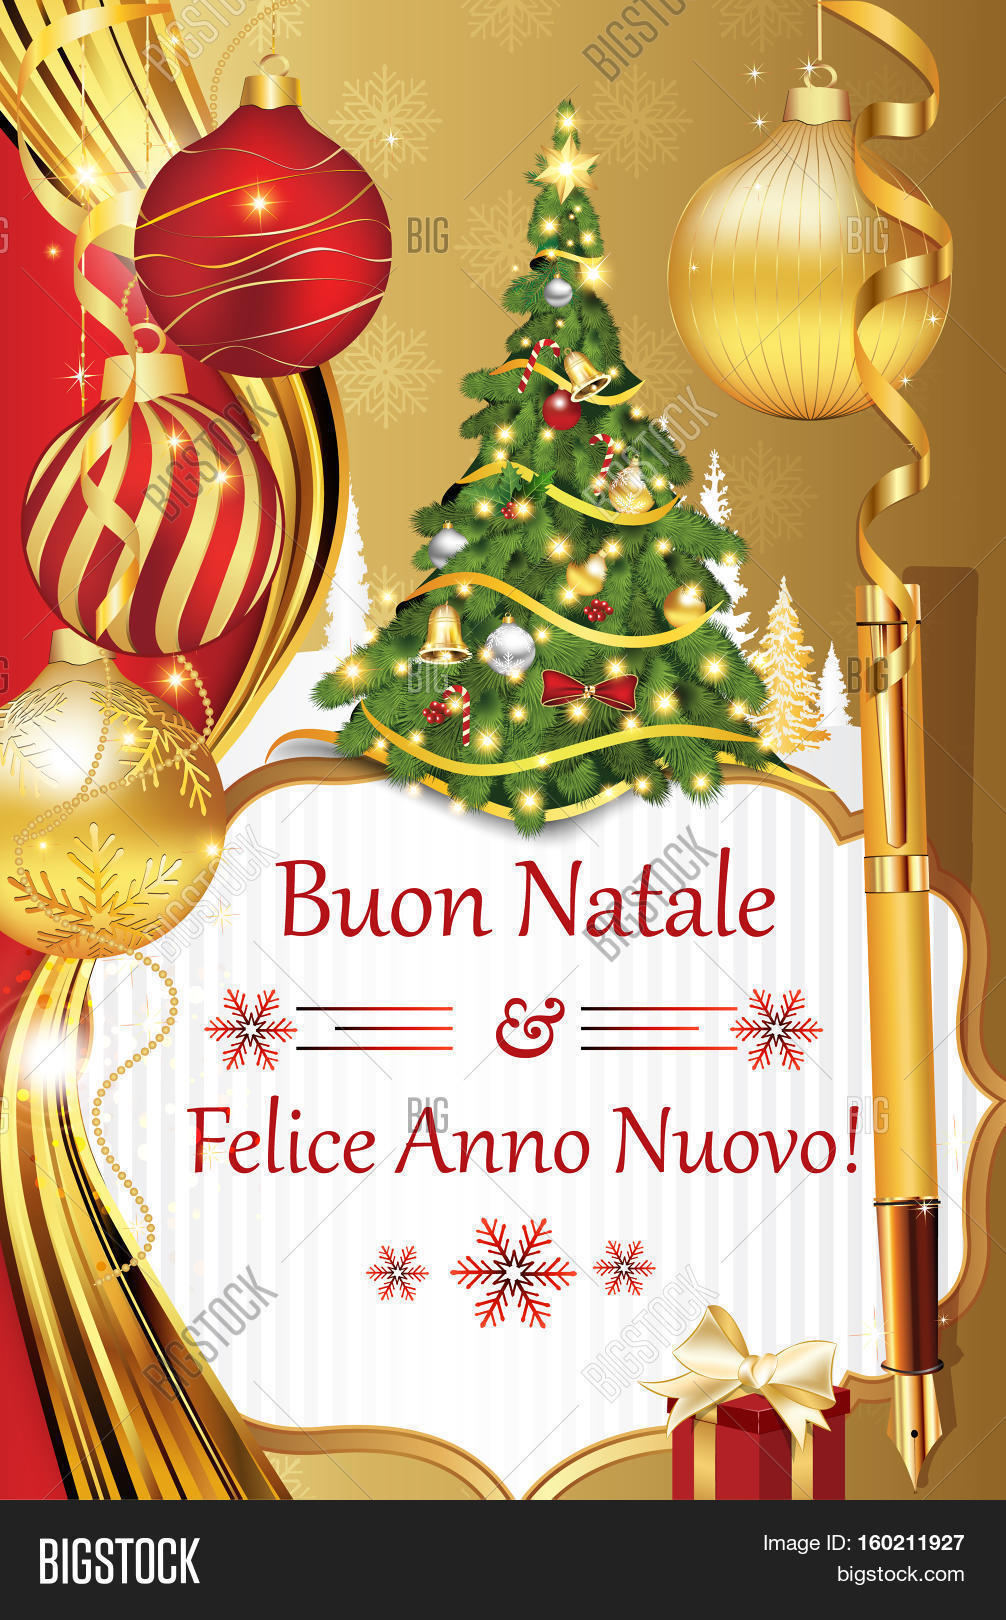 buon natale e felice anno nuovo new year wishes in italian language merry